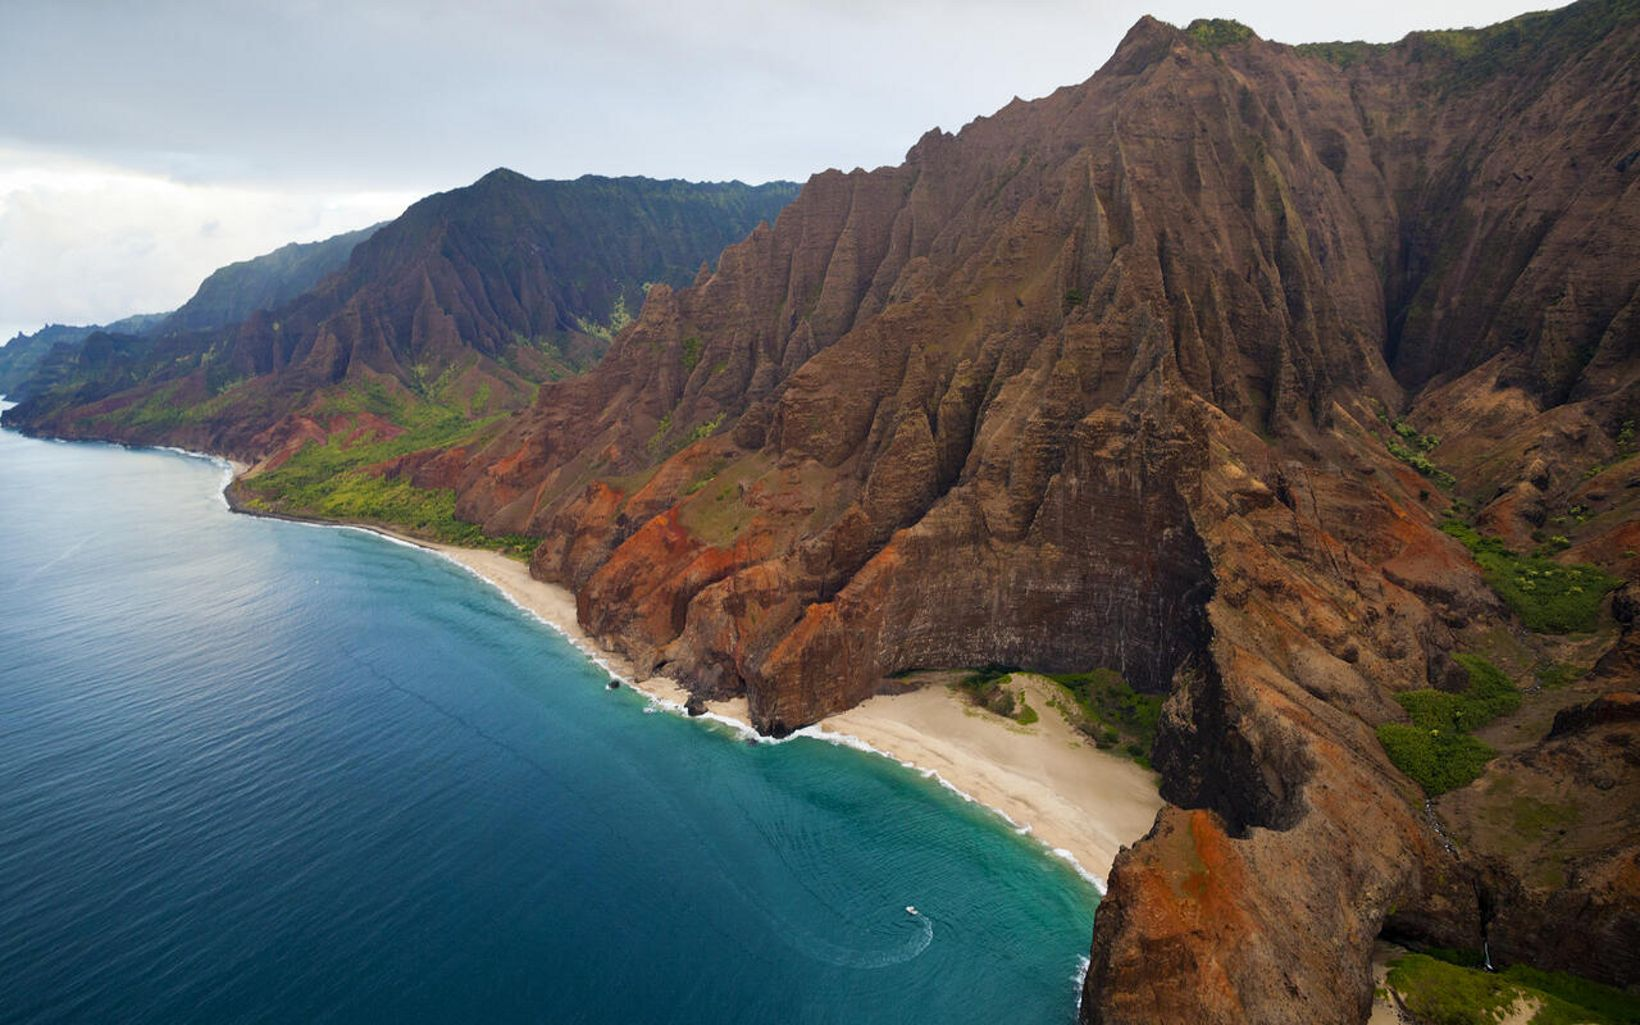 Aerial view of a tour boat near the high cliffs of the Na Pali Coast in Hawaii.